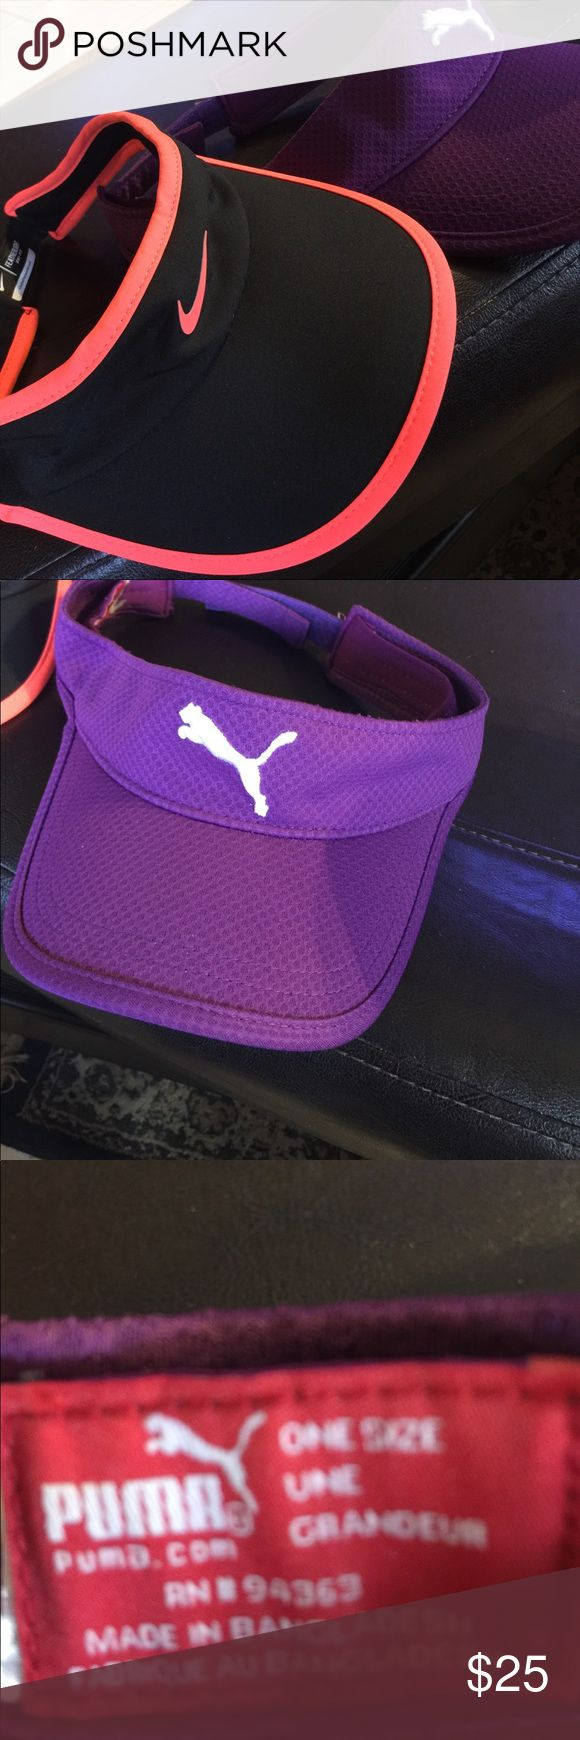 Sun Visors Nike Dri-Fit black/coral sun visor expandable back new with tag and Puma Sunvisor in excellent condition $25 Bunnies or $15 each nike/puma Accessories Hats